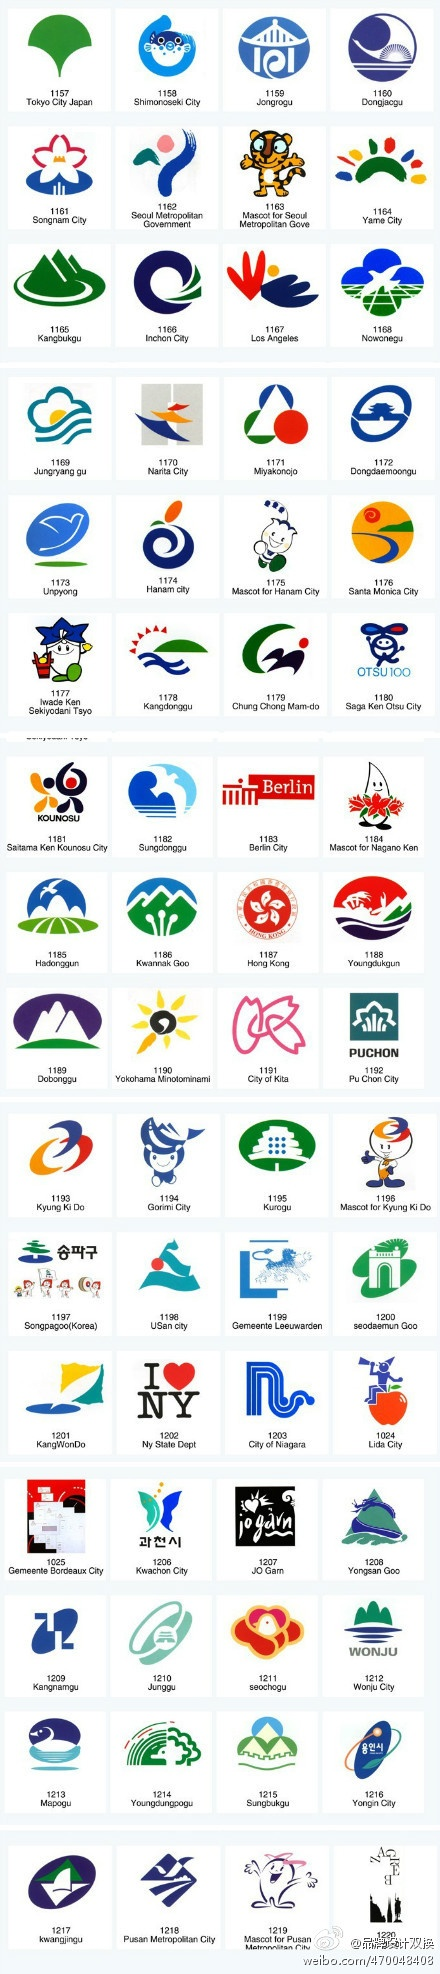 City logos most of these are terrible probably derived from competitions